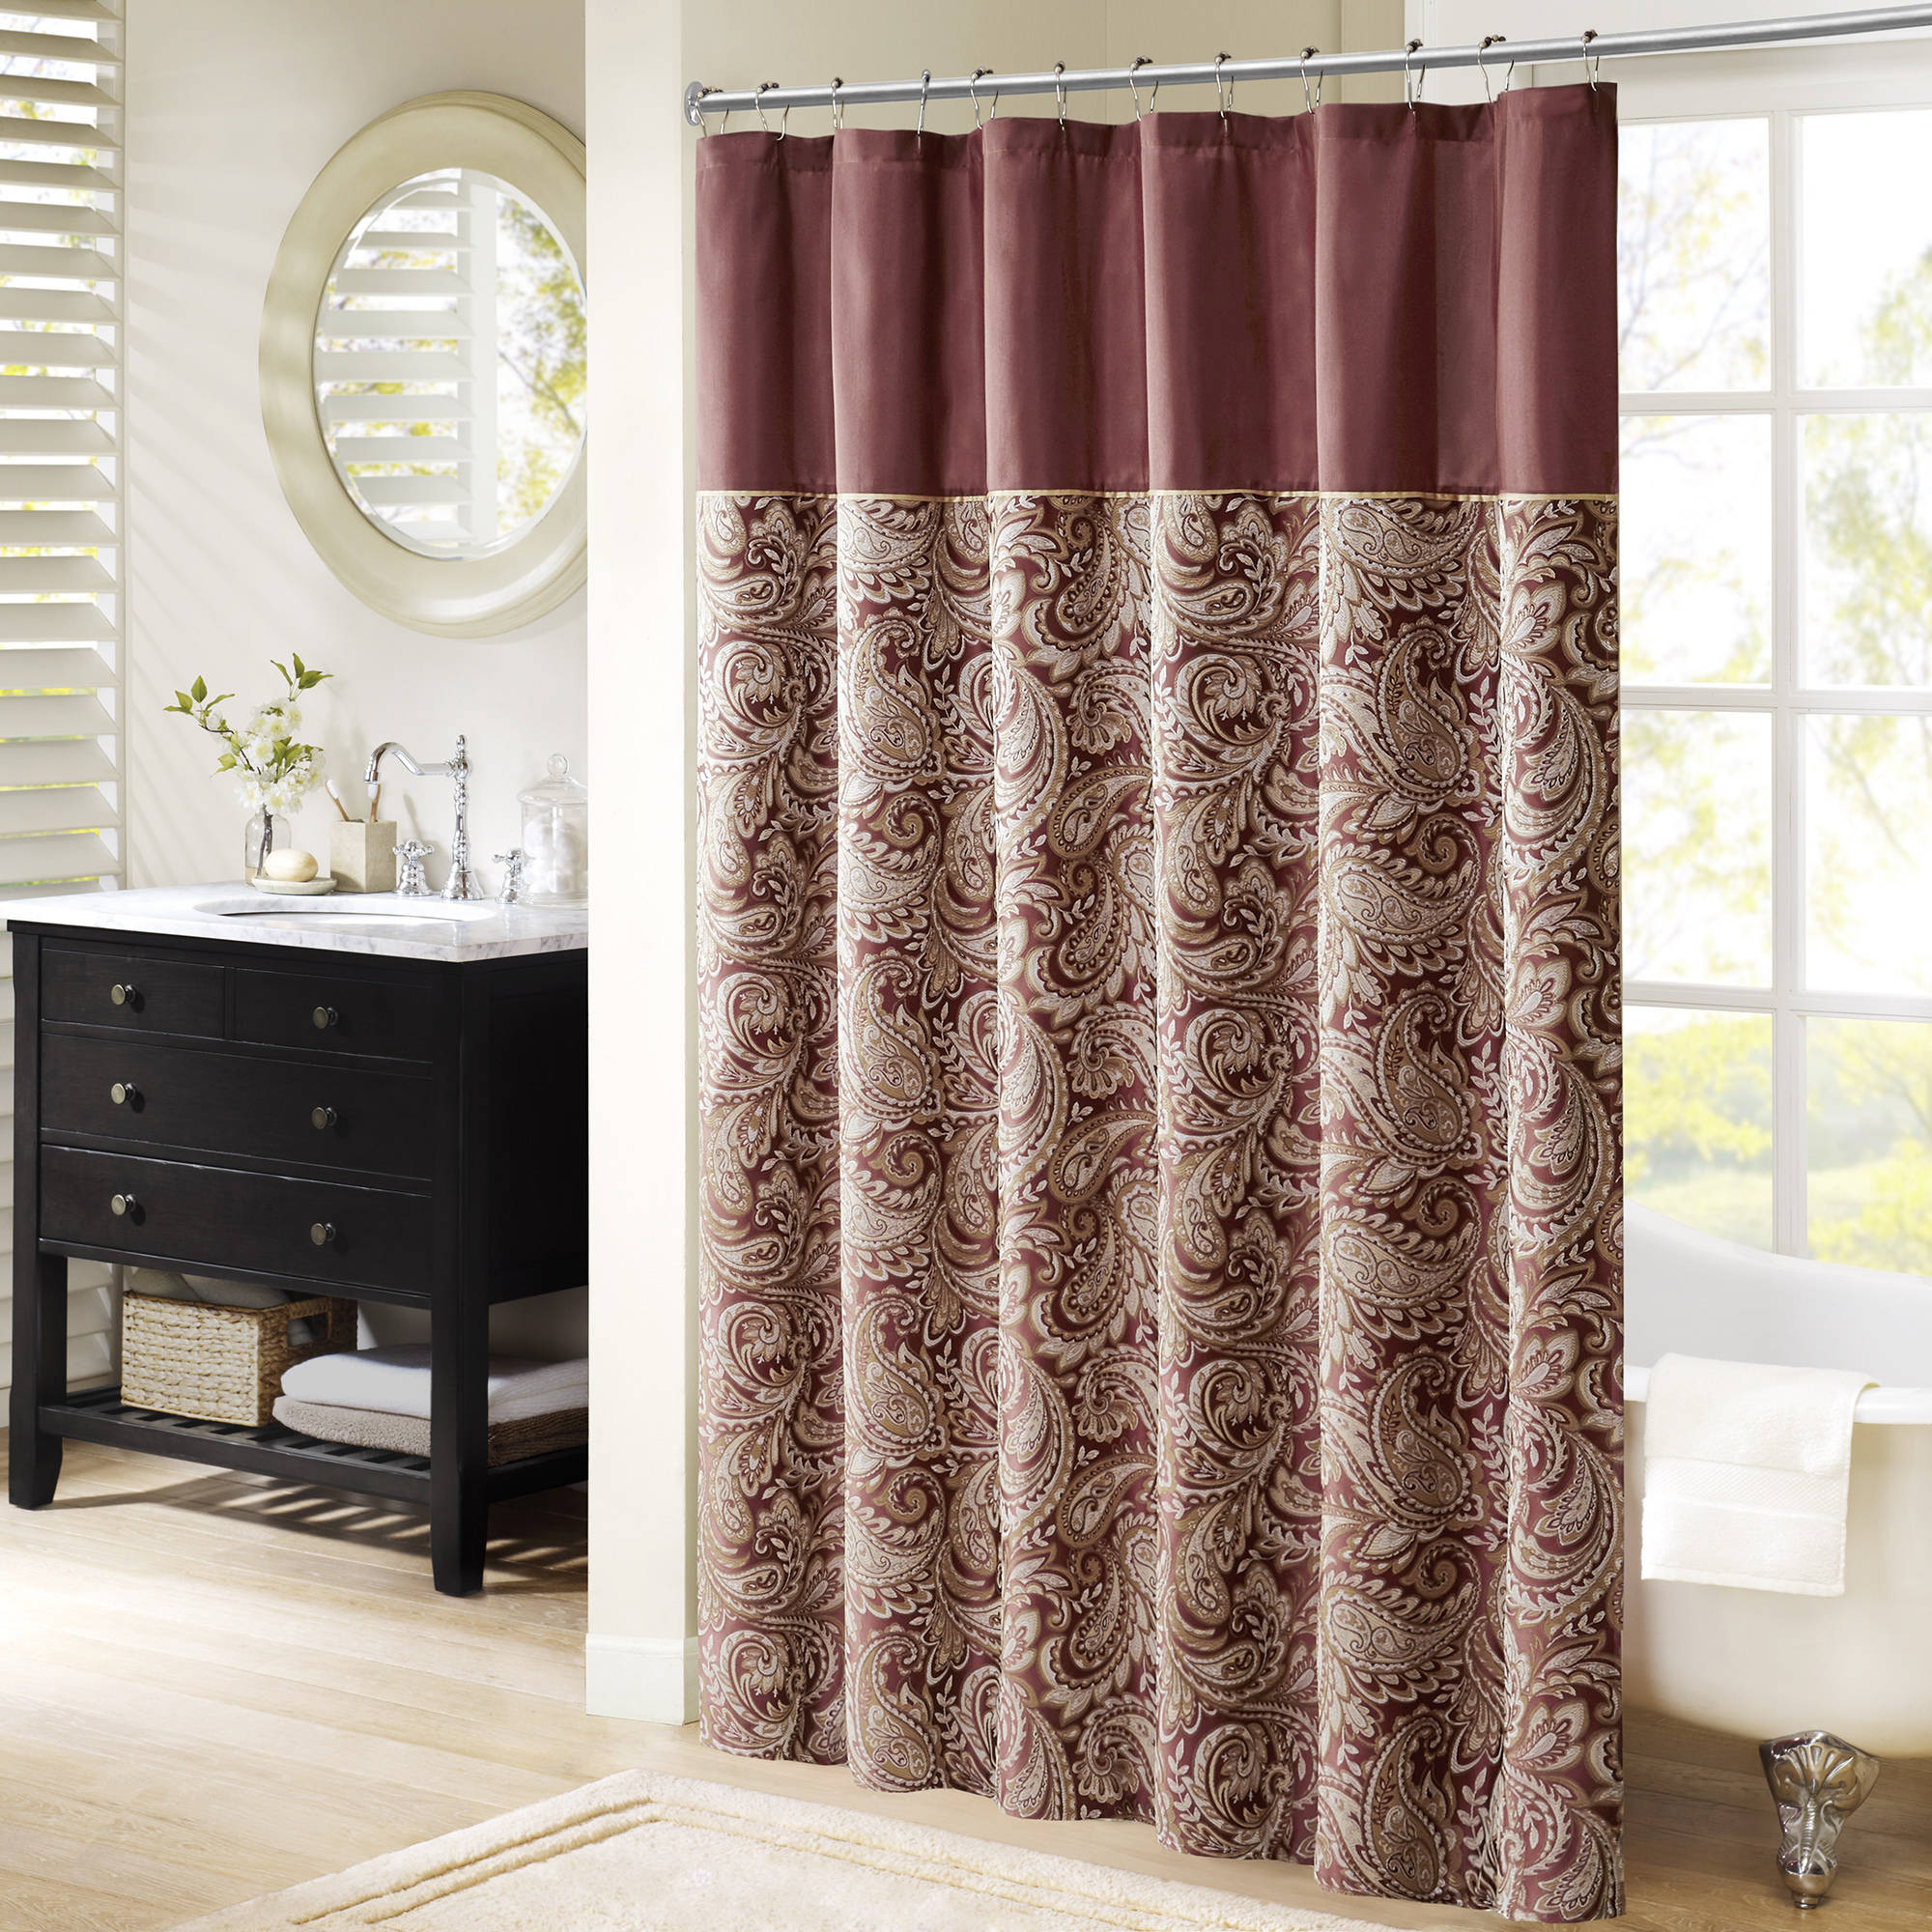 7 foot shower curtain. Shower Curtains Walmart Pertaining To Size 2000 X 7 Foot Wide Curtain  Ideas